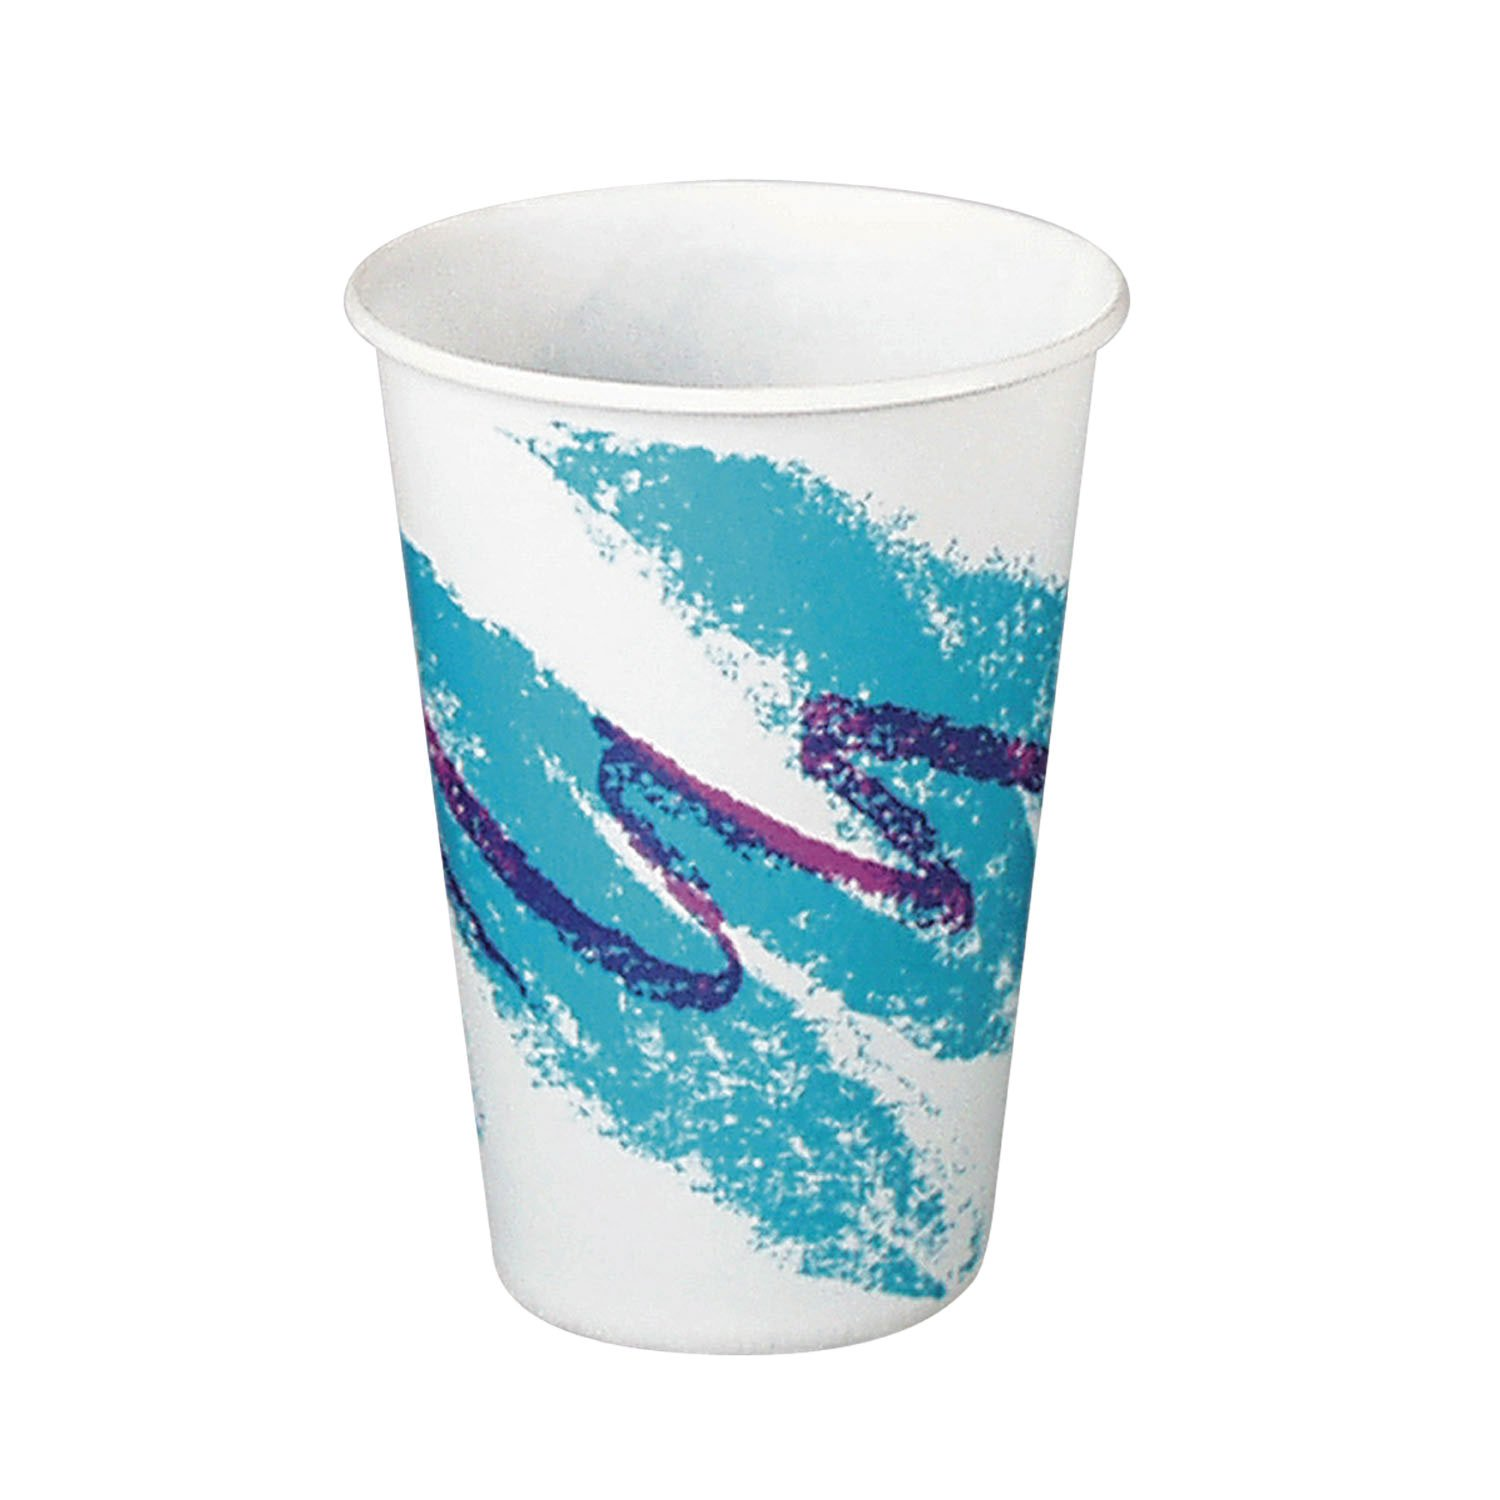 Every single one of us has seen this paper cup design, but